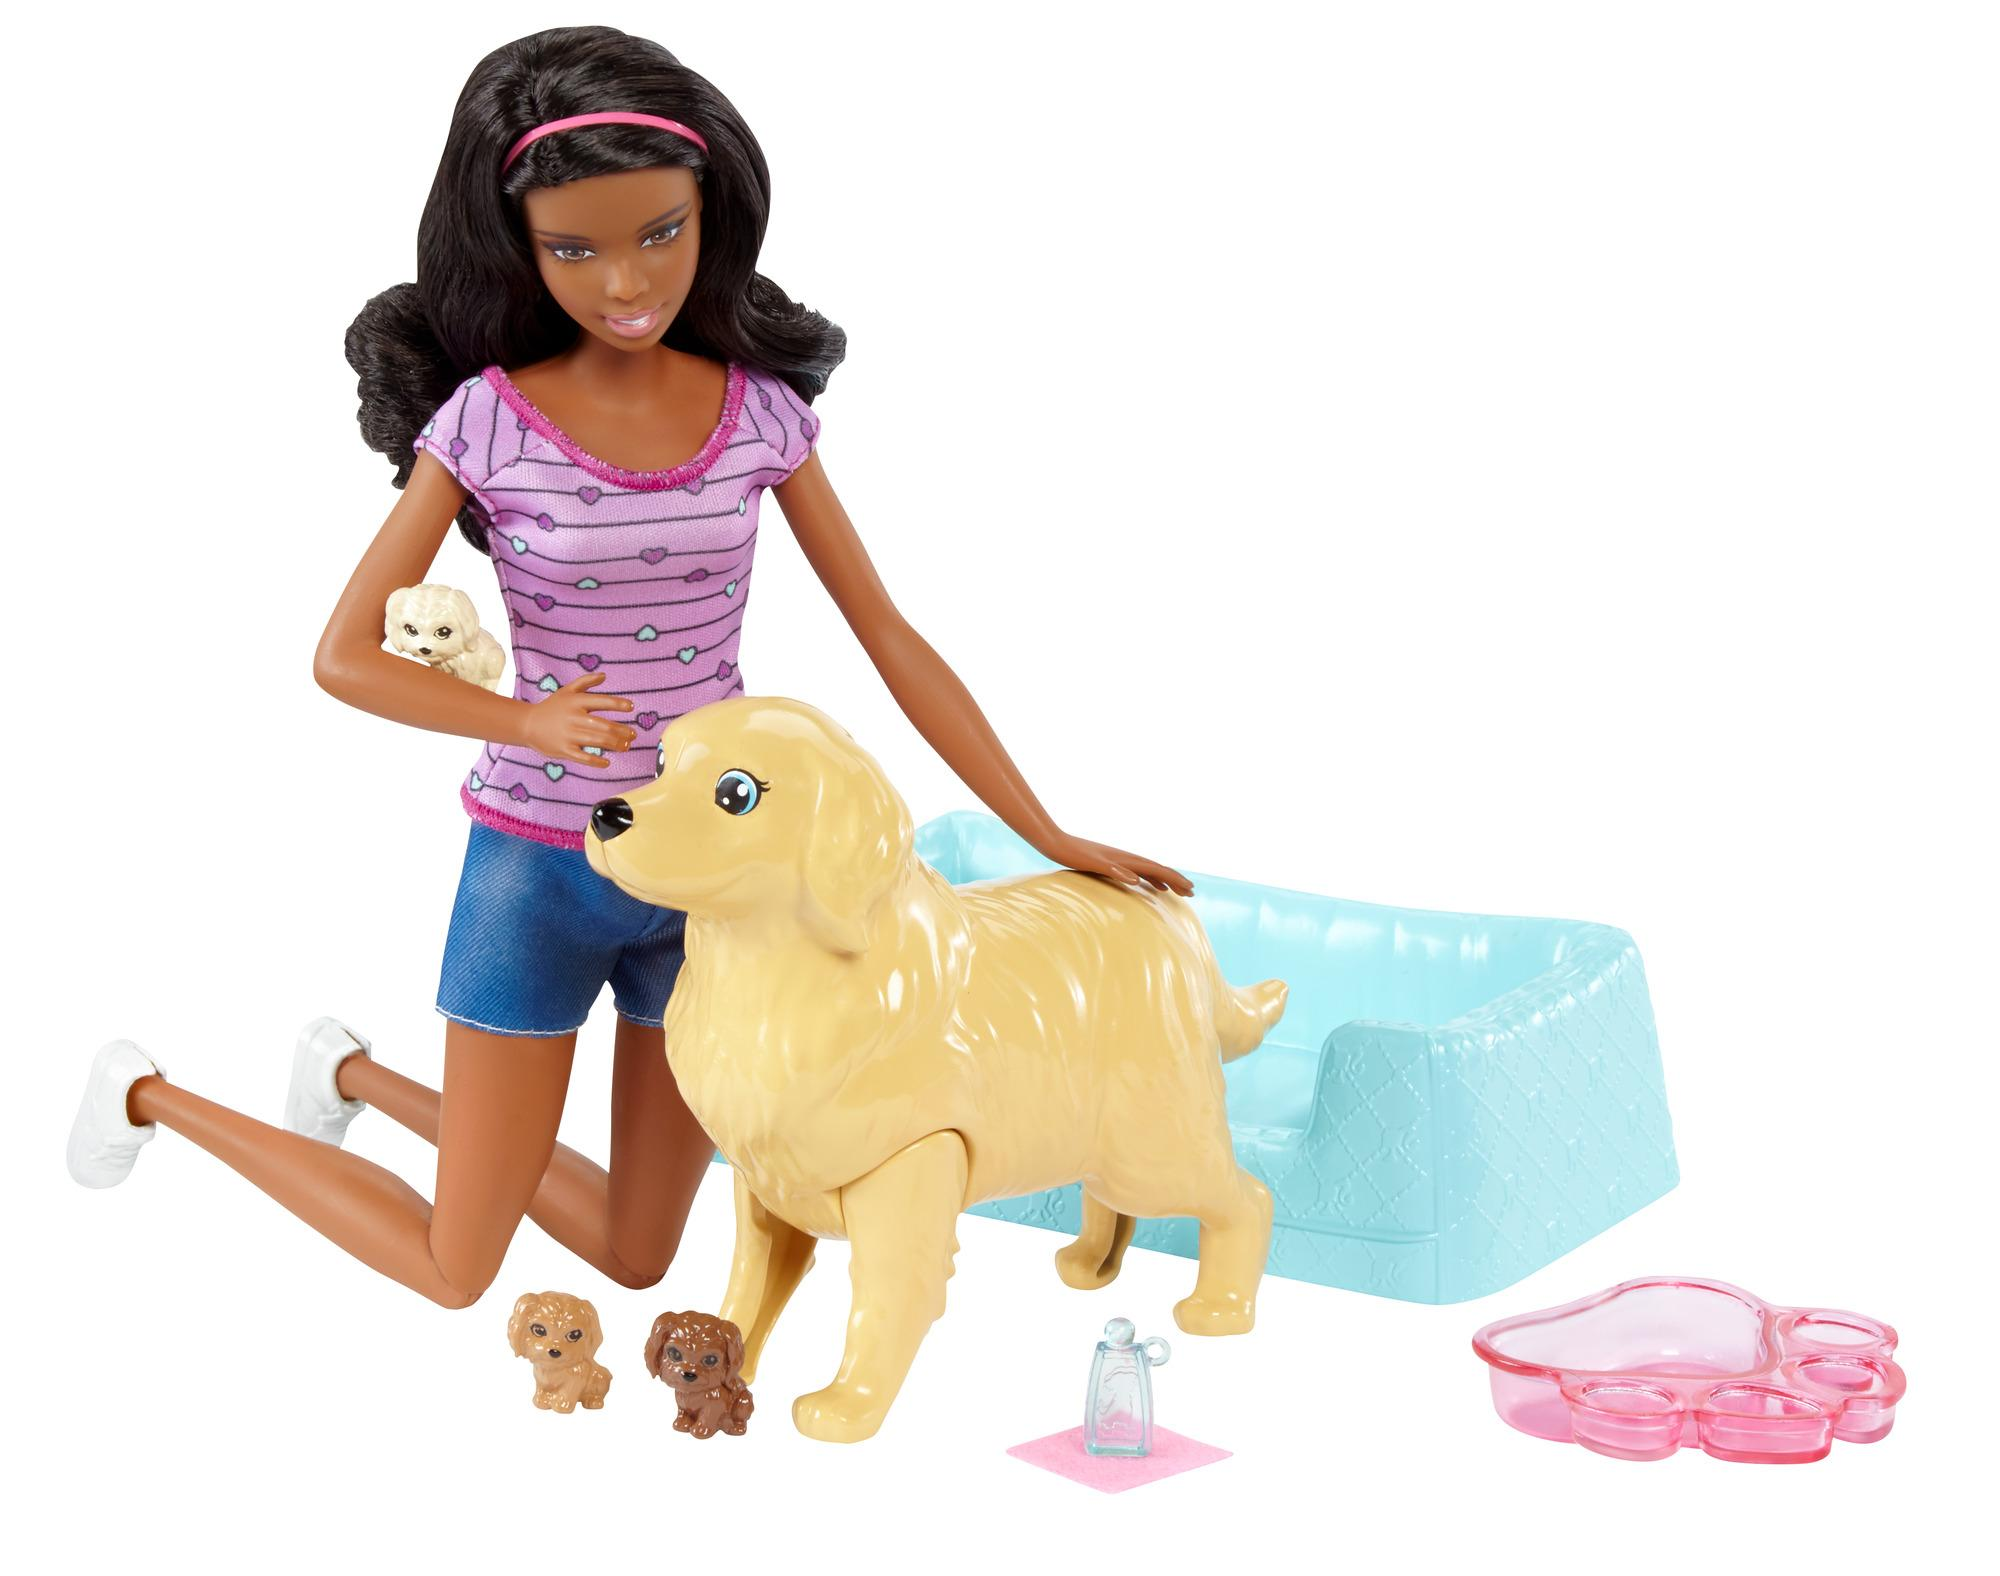 Amazon.com: Barbie Newborn Pups Doll & Pets Playset